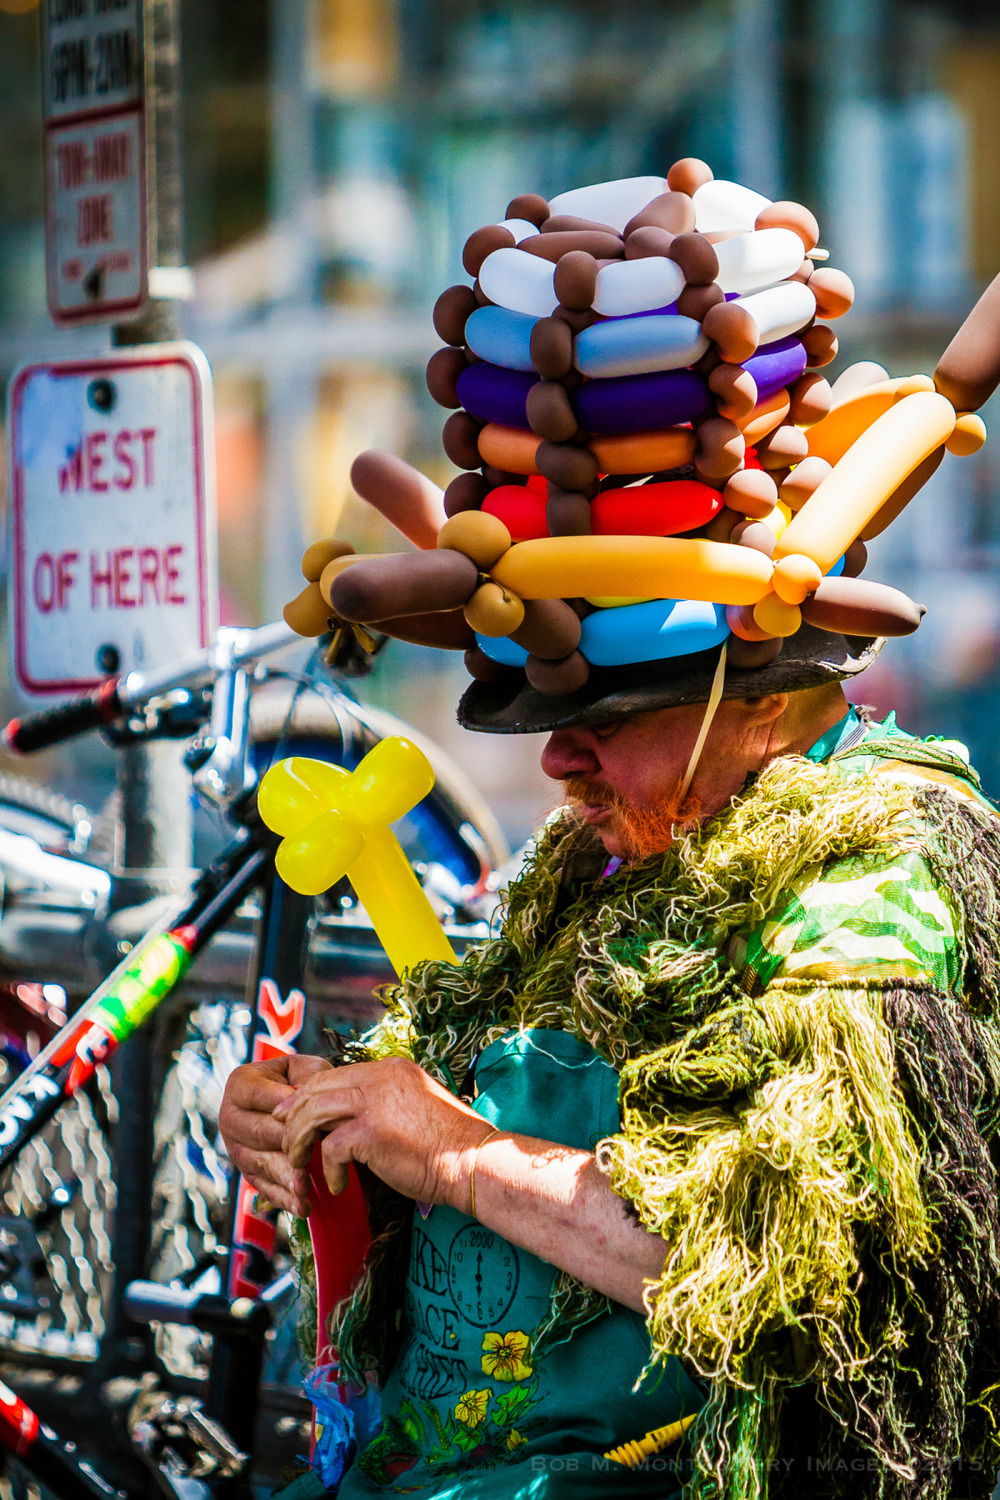 people of seattle 20120610 - 0032.jpg